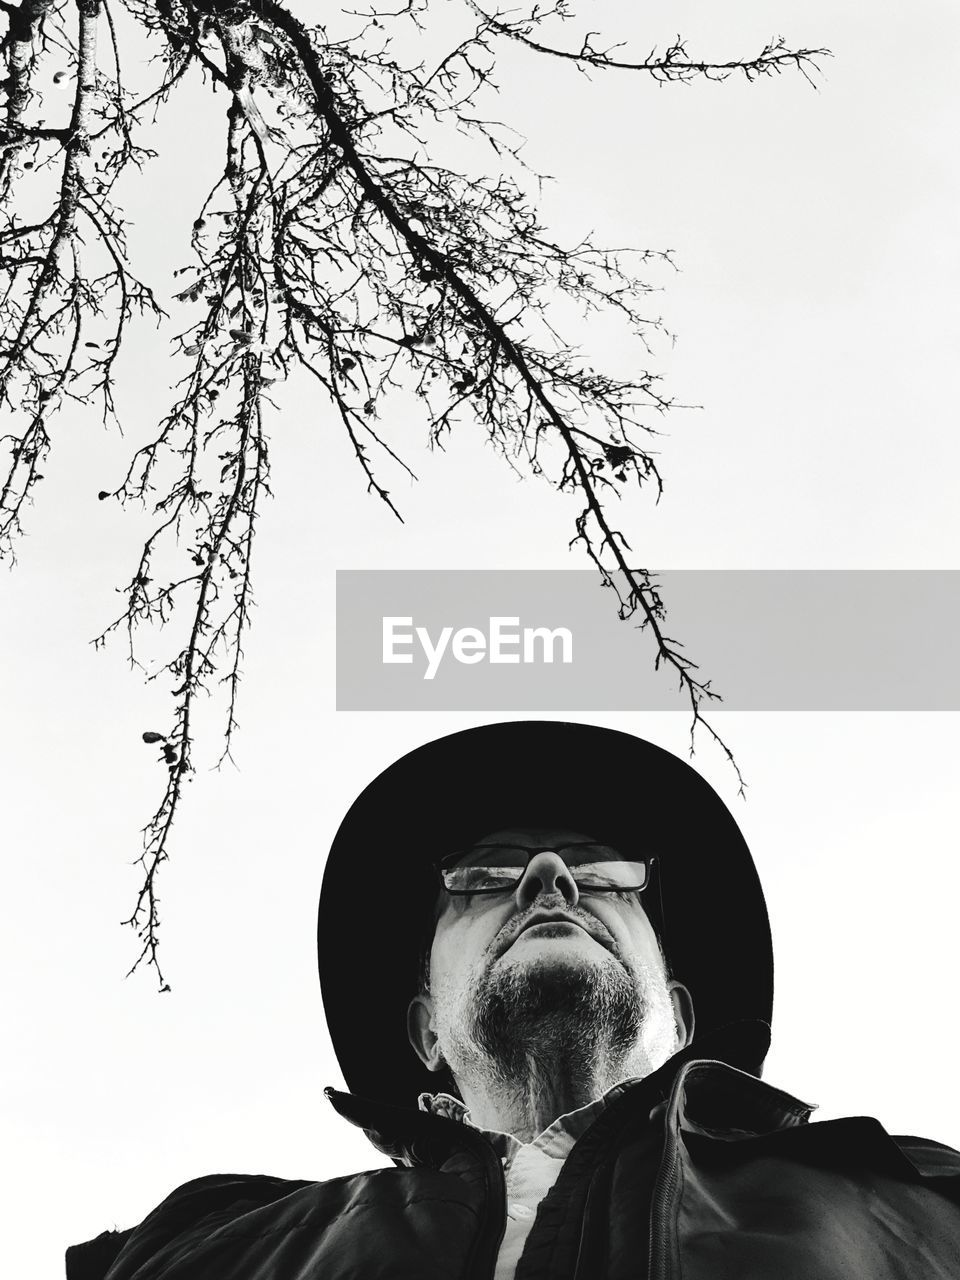 sky, low angle view, tree, facial hair, headshot, one person, beard, nature, plant, portrait, real people, clear sky, lifestyles, men, hat, day, leisure activity, outdoors, clothing, mature men, human face